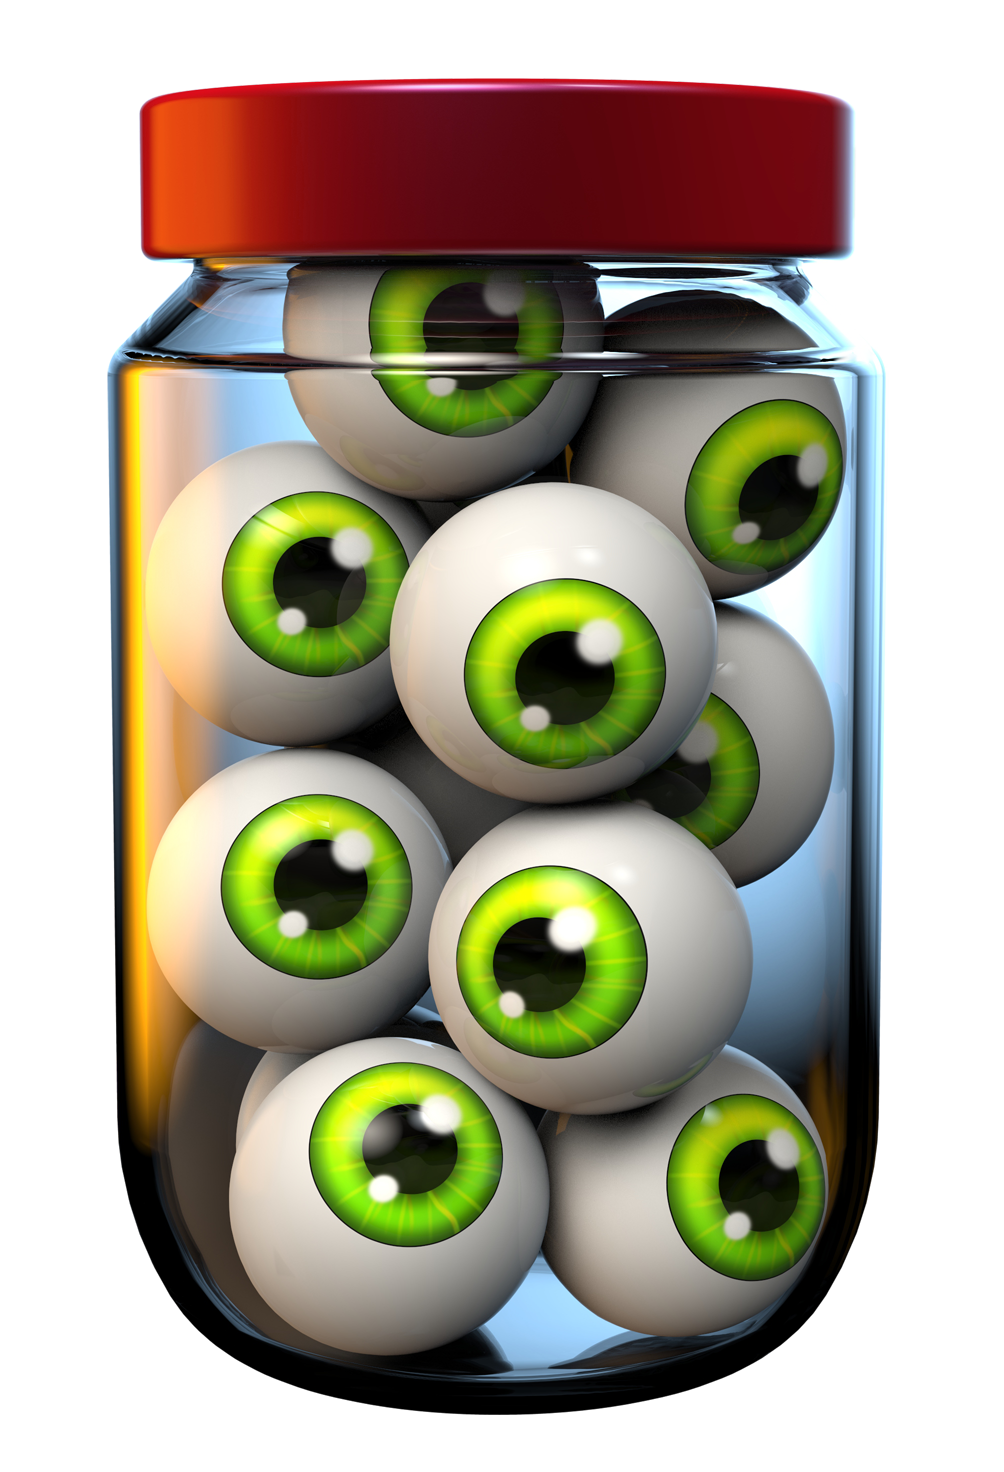 Halloween eyeball clipart png. Jar of eyeballs image